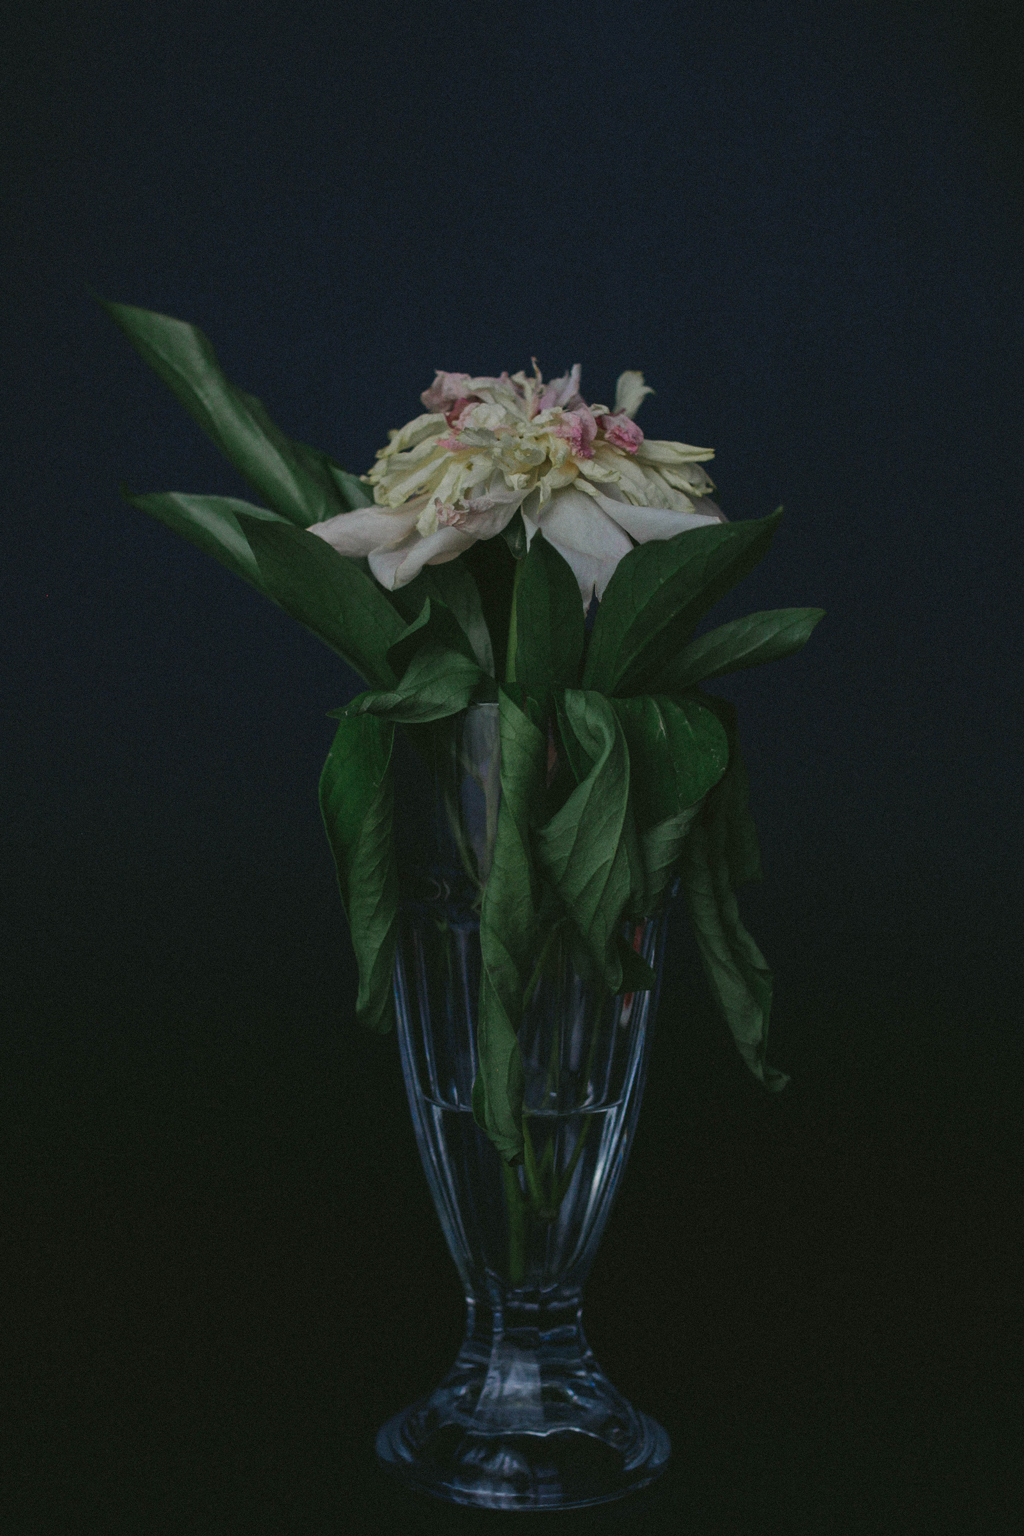 Dead peony flower in a light blue vase against a black background